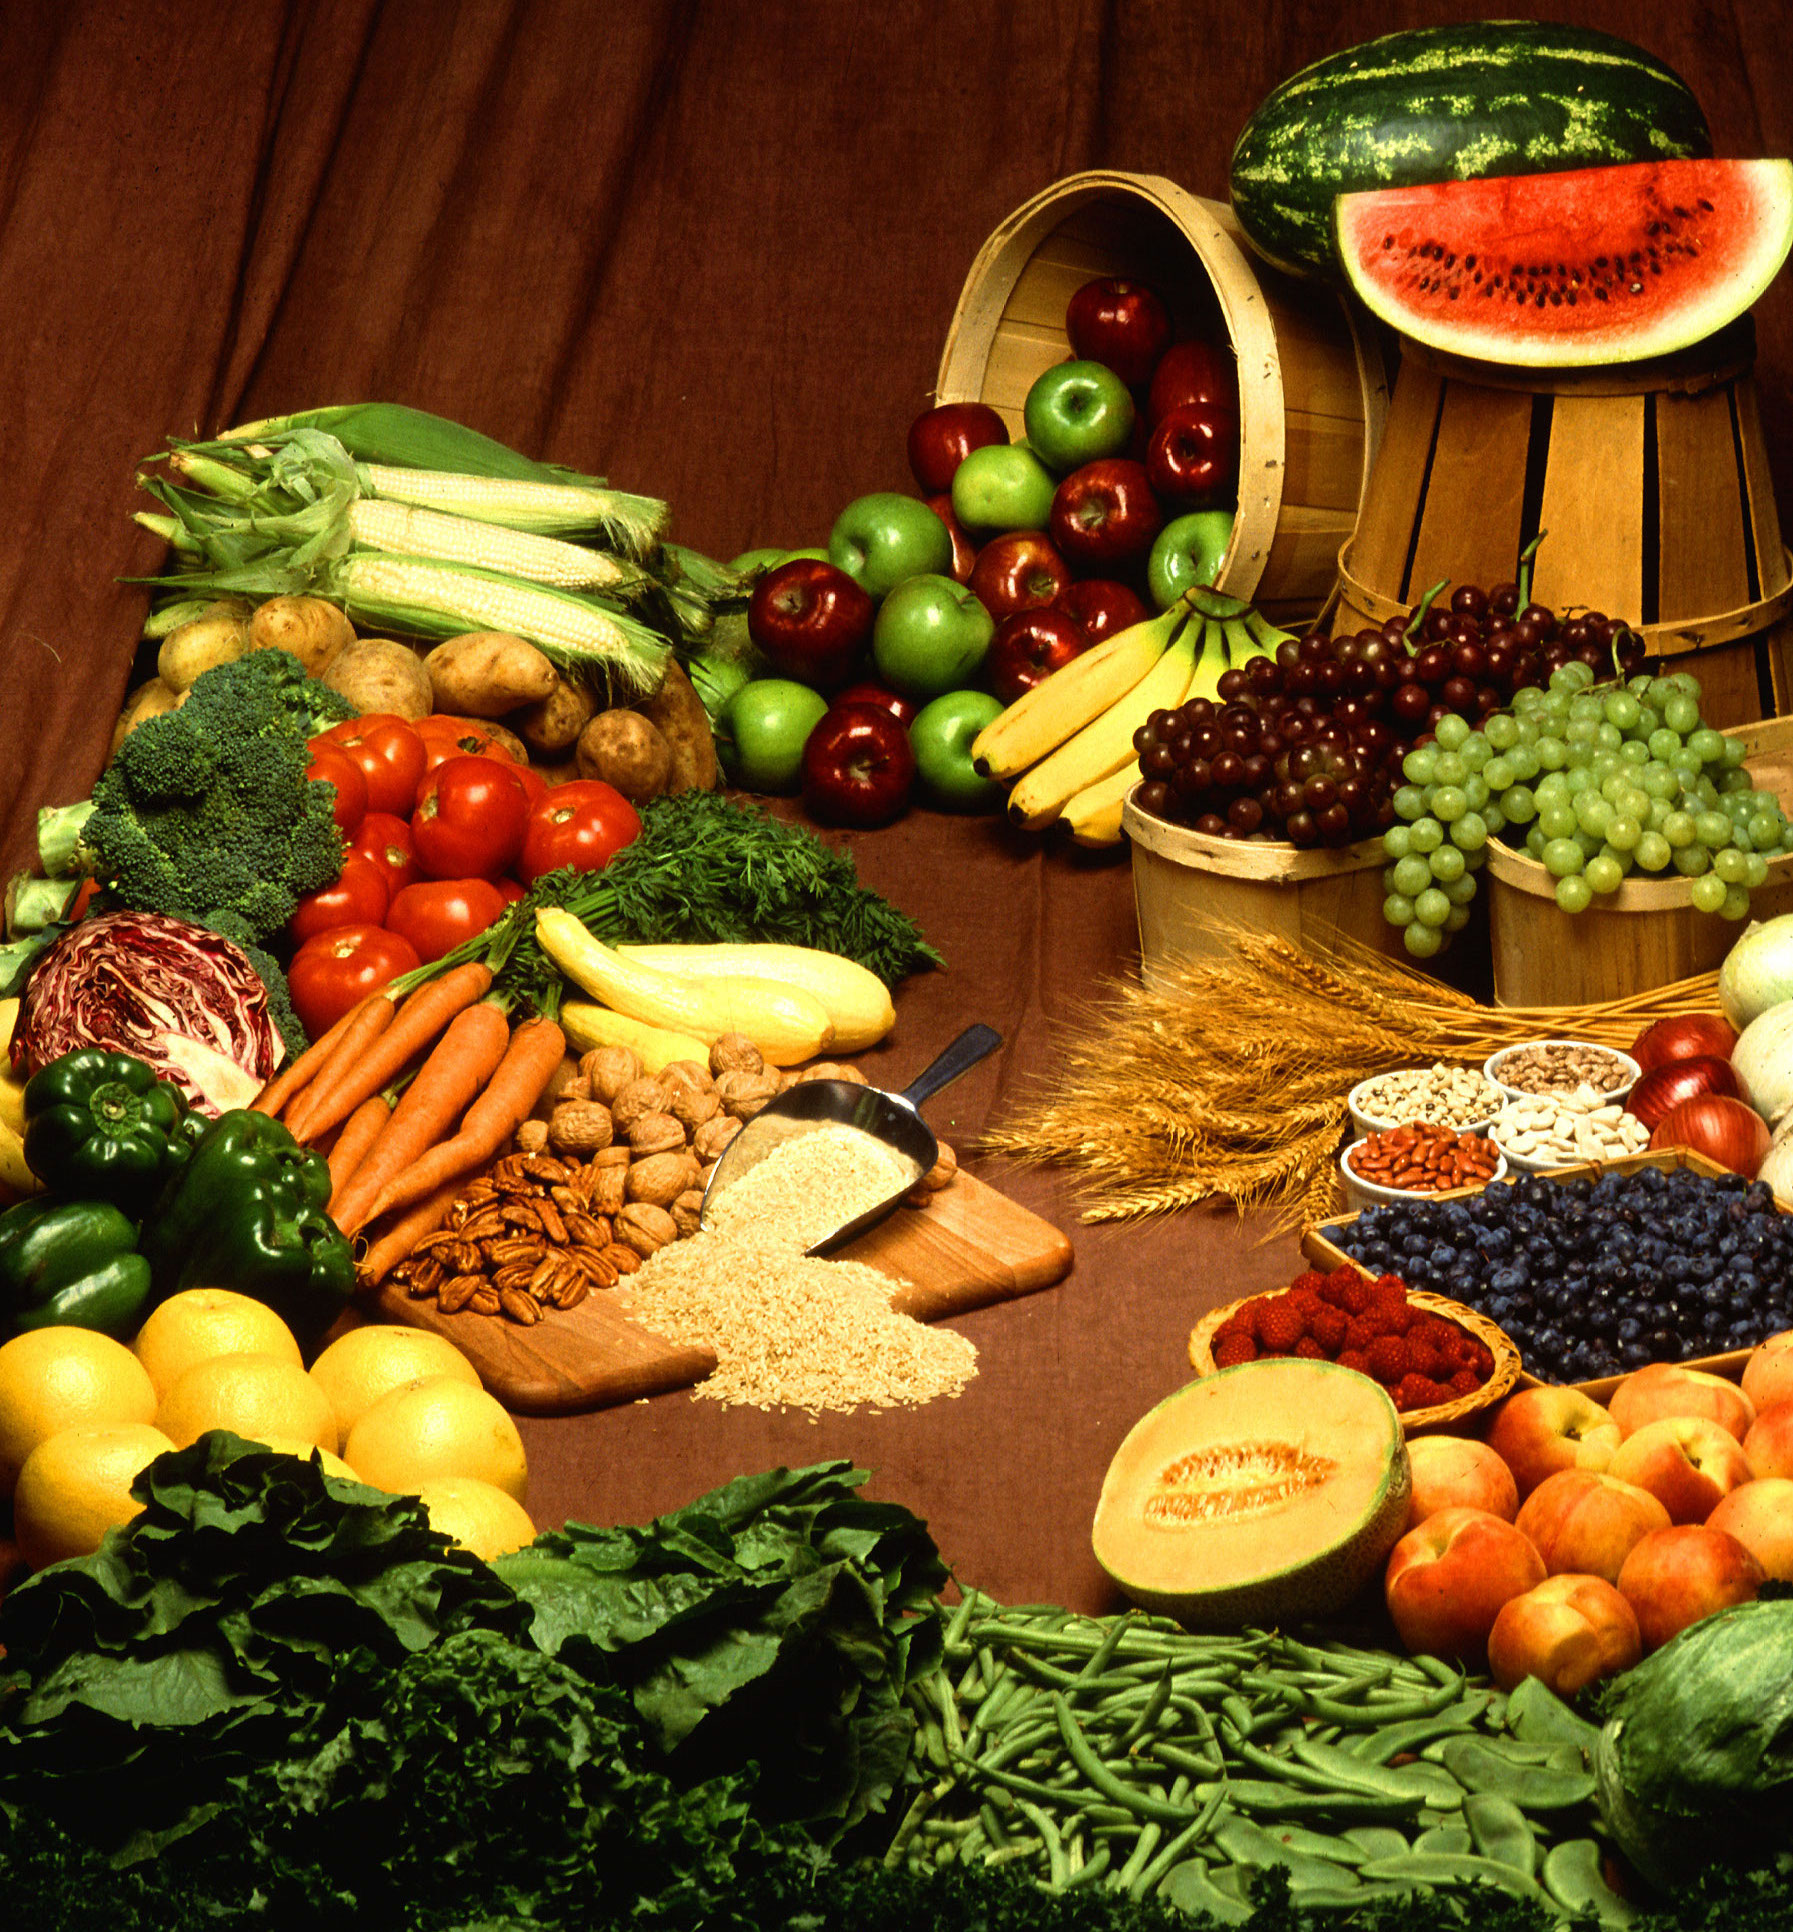 Scientists suggest to go on 'Planetary Health' diet to encourage healthy eating